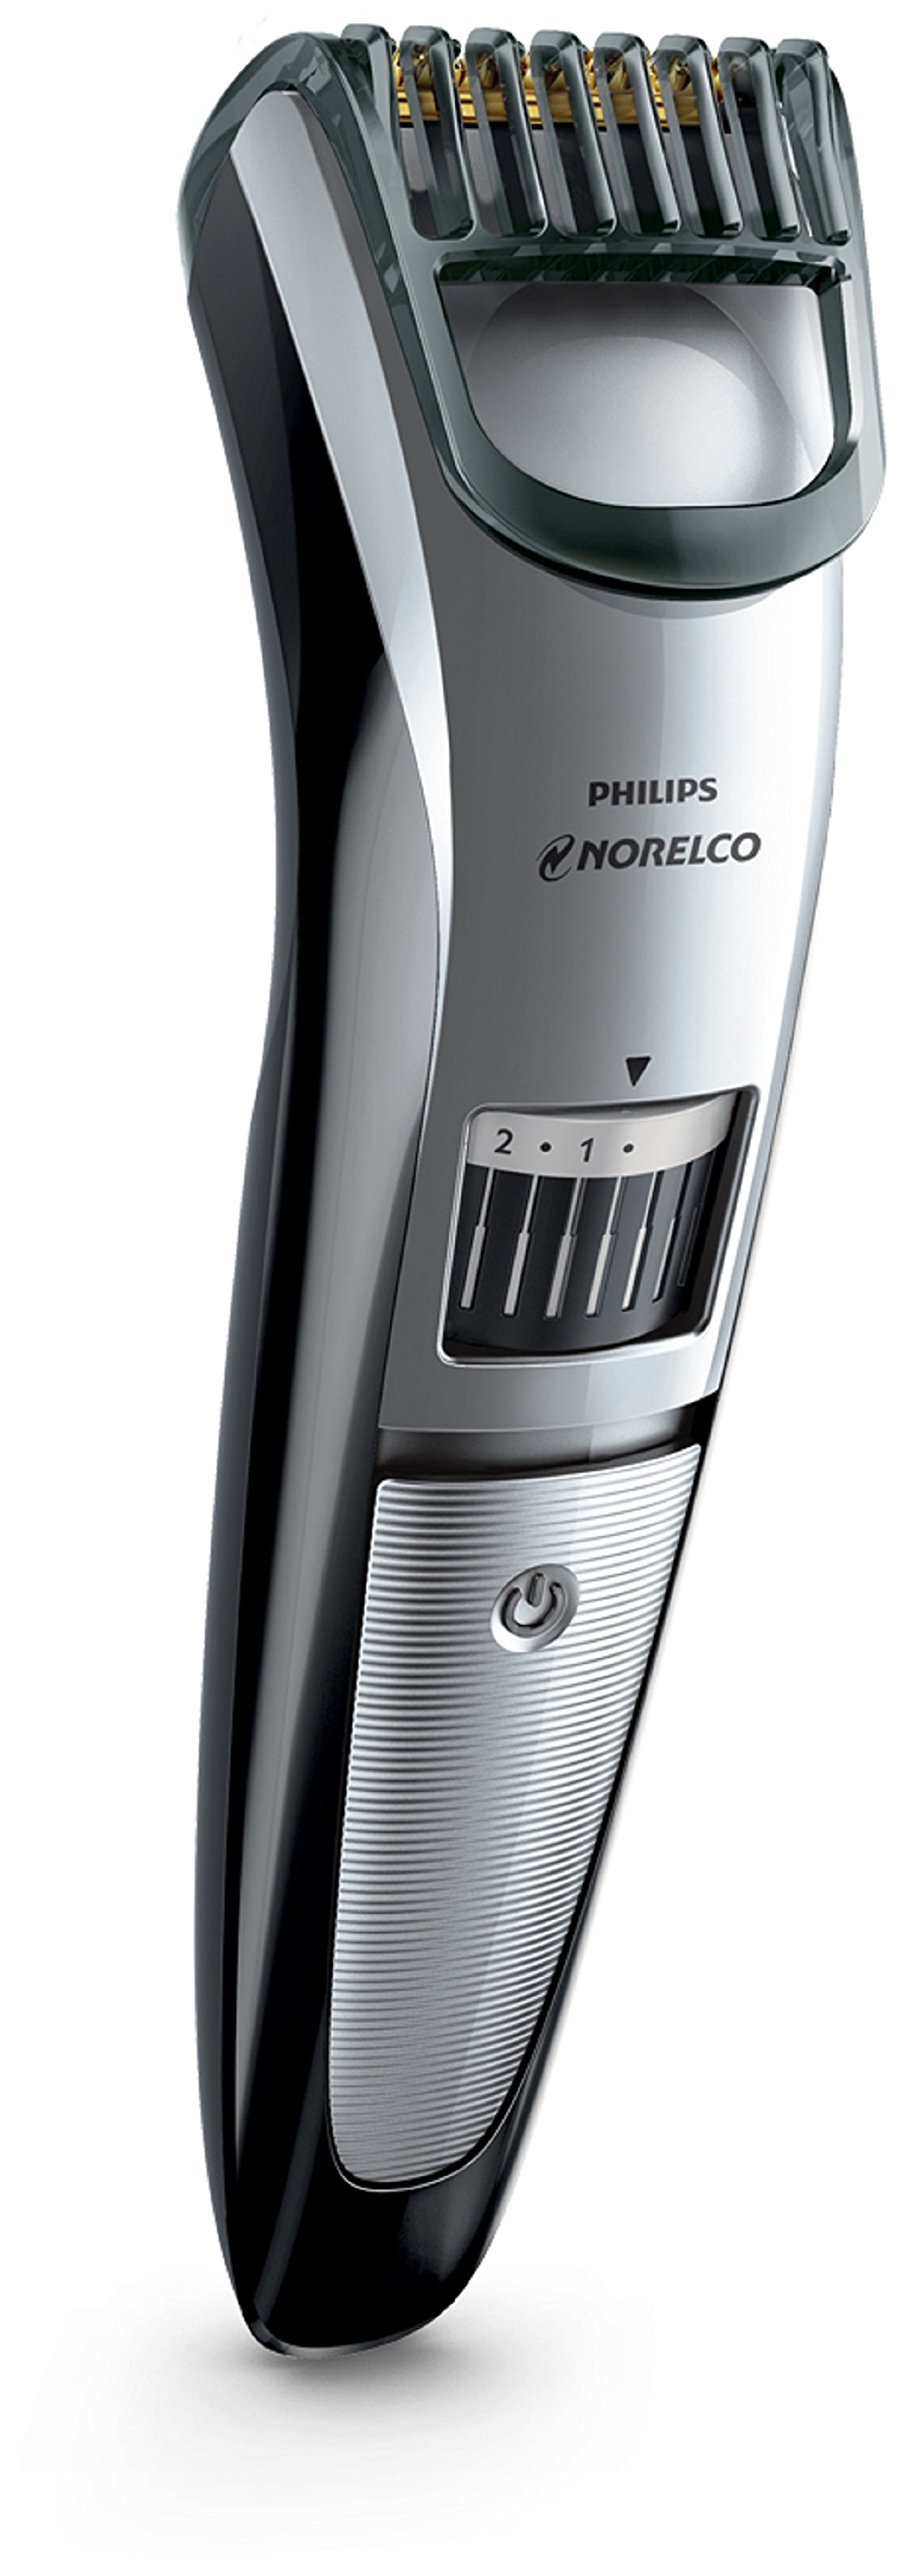 Philips Norelco QT4018 49 Cordless